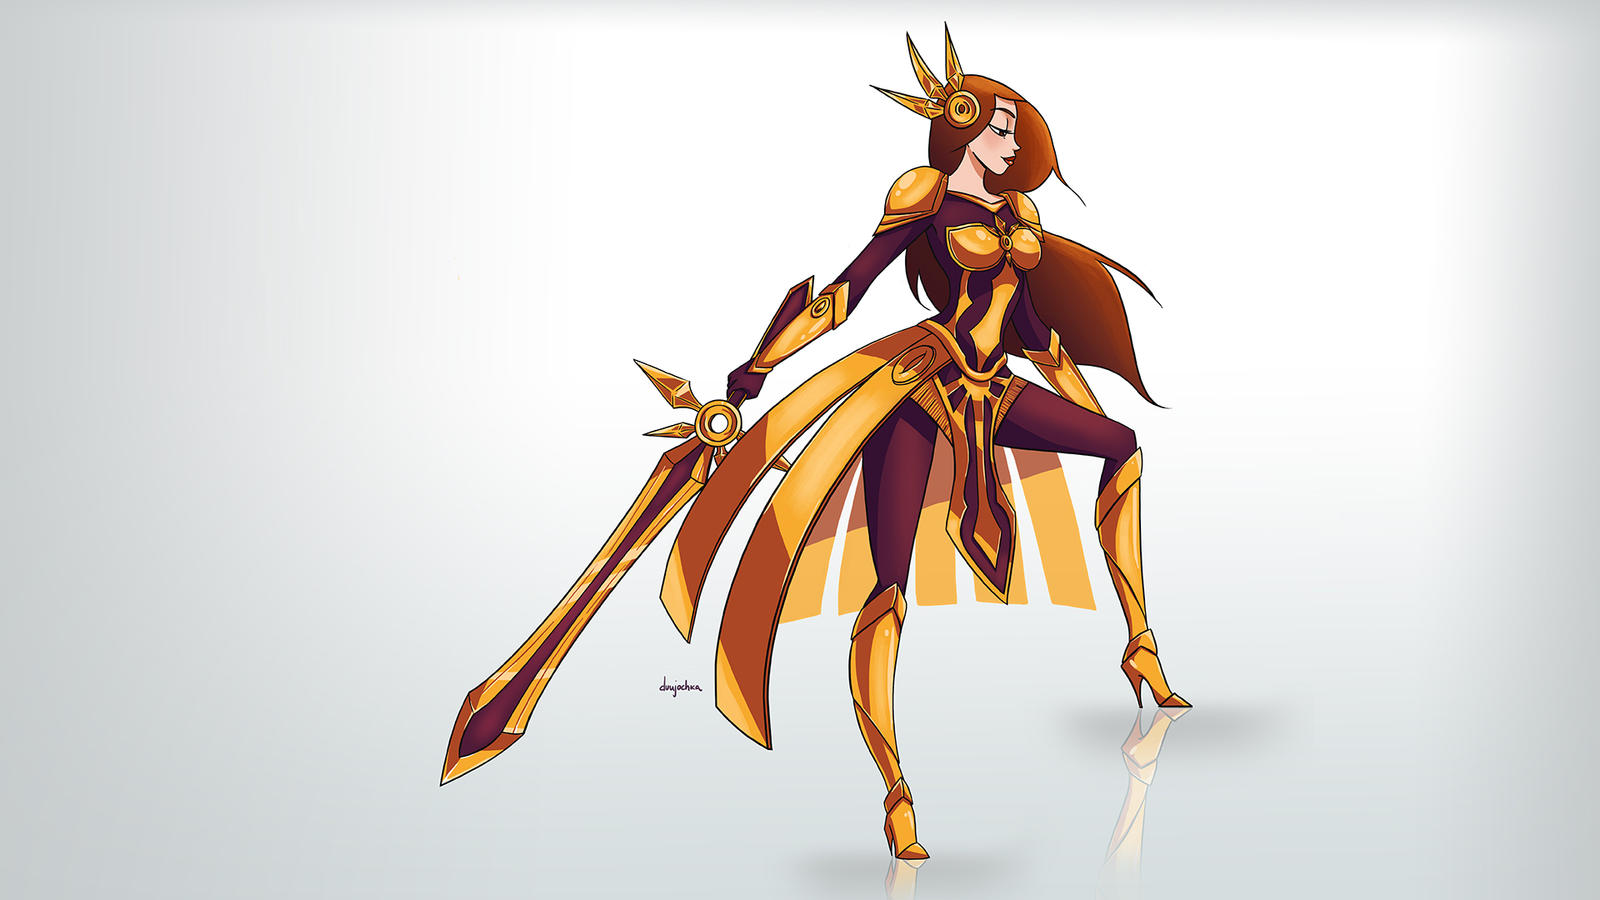 leona wallpaper fan art - photo #16